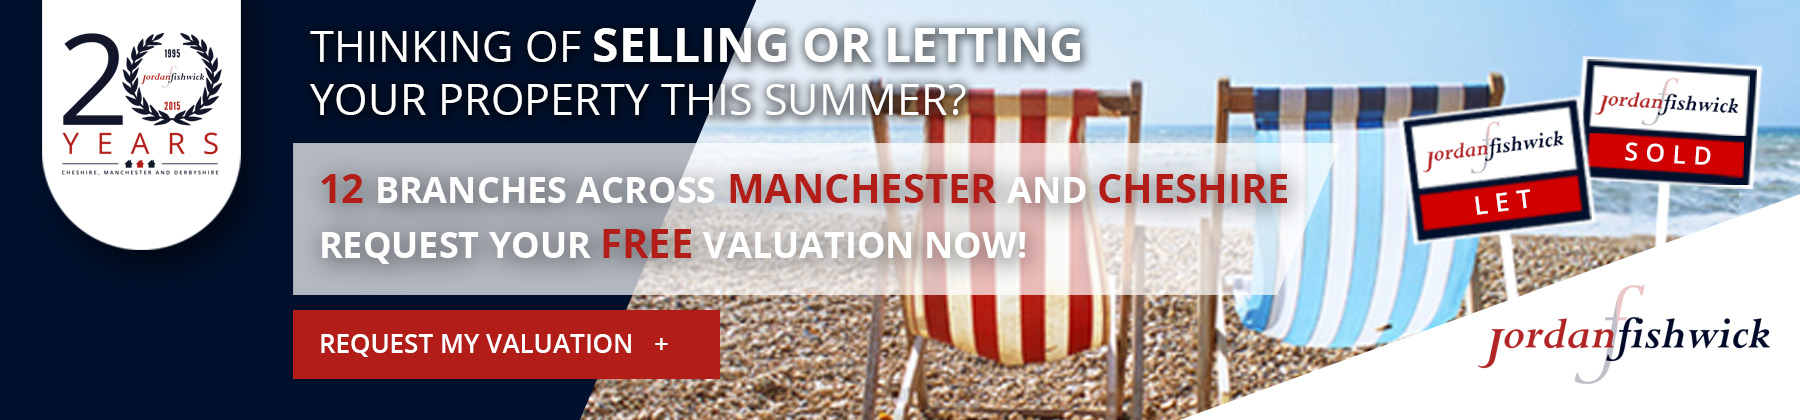 Thinking-of-selling-or-letting-your-property-Summer-2016